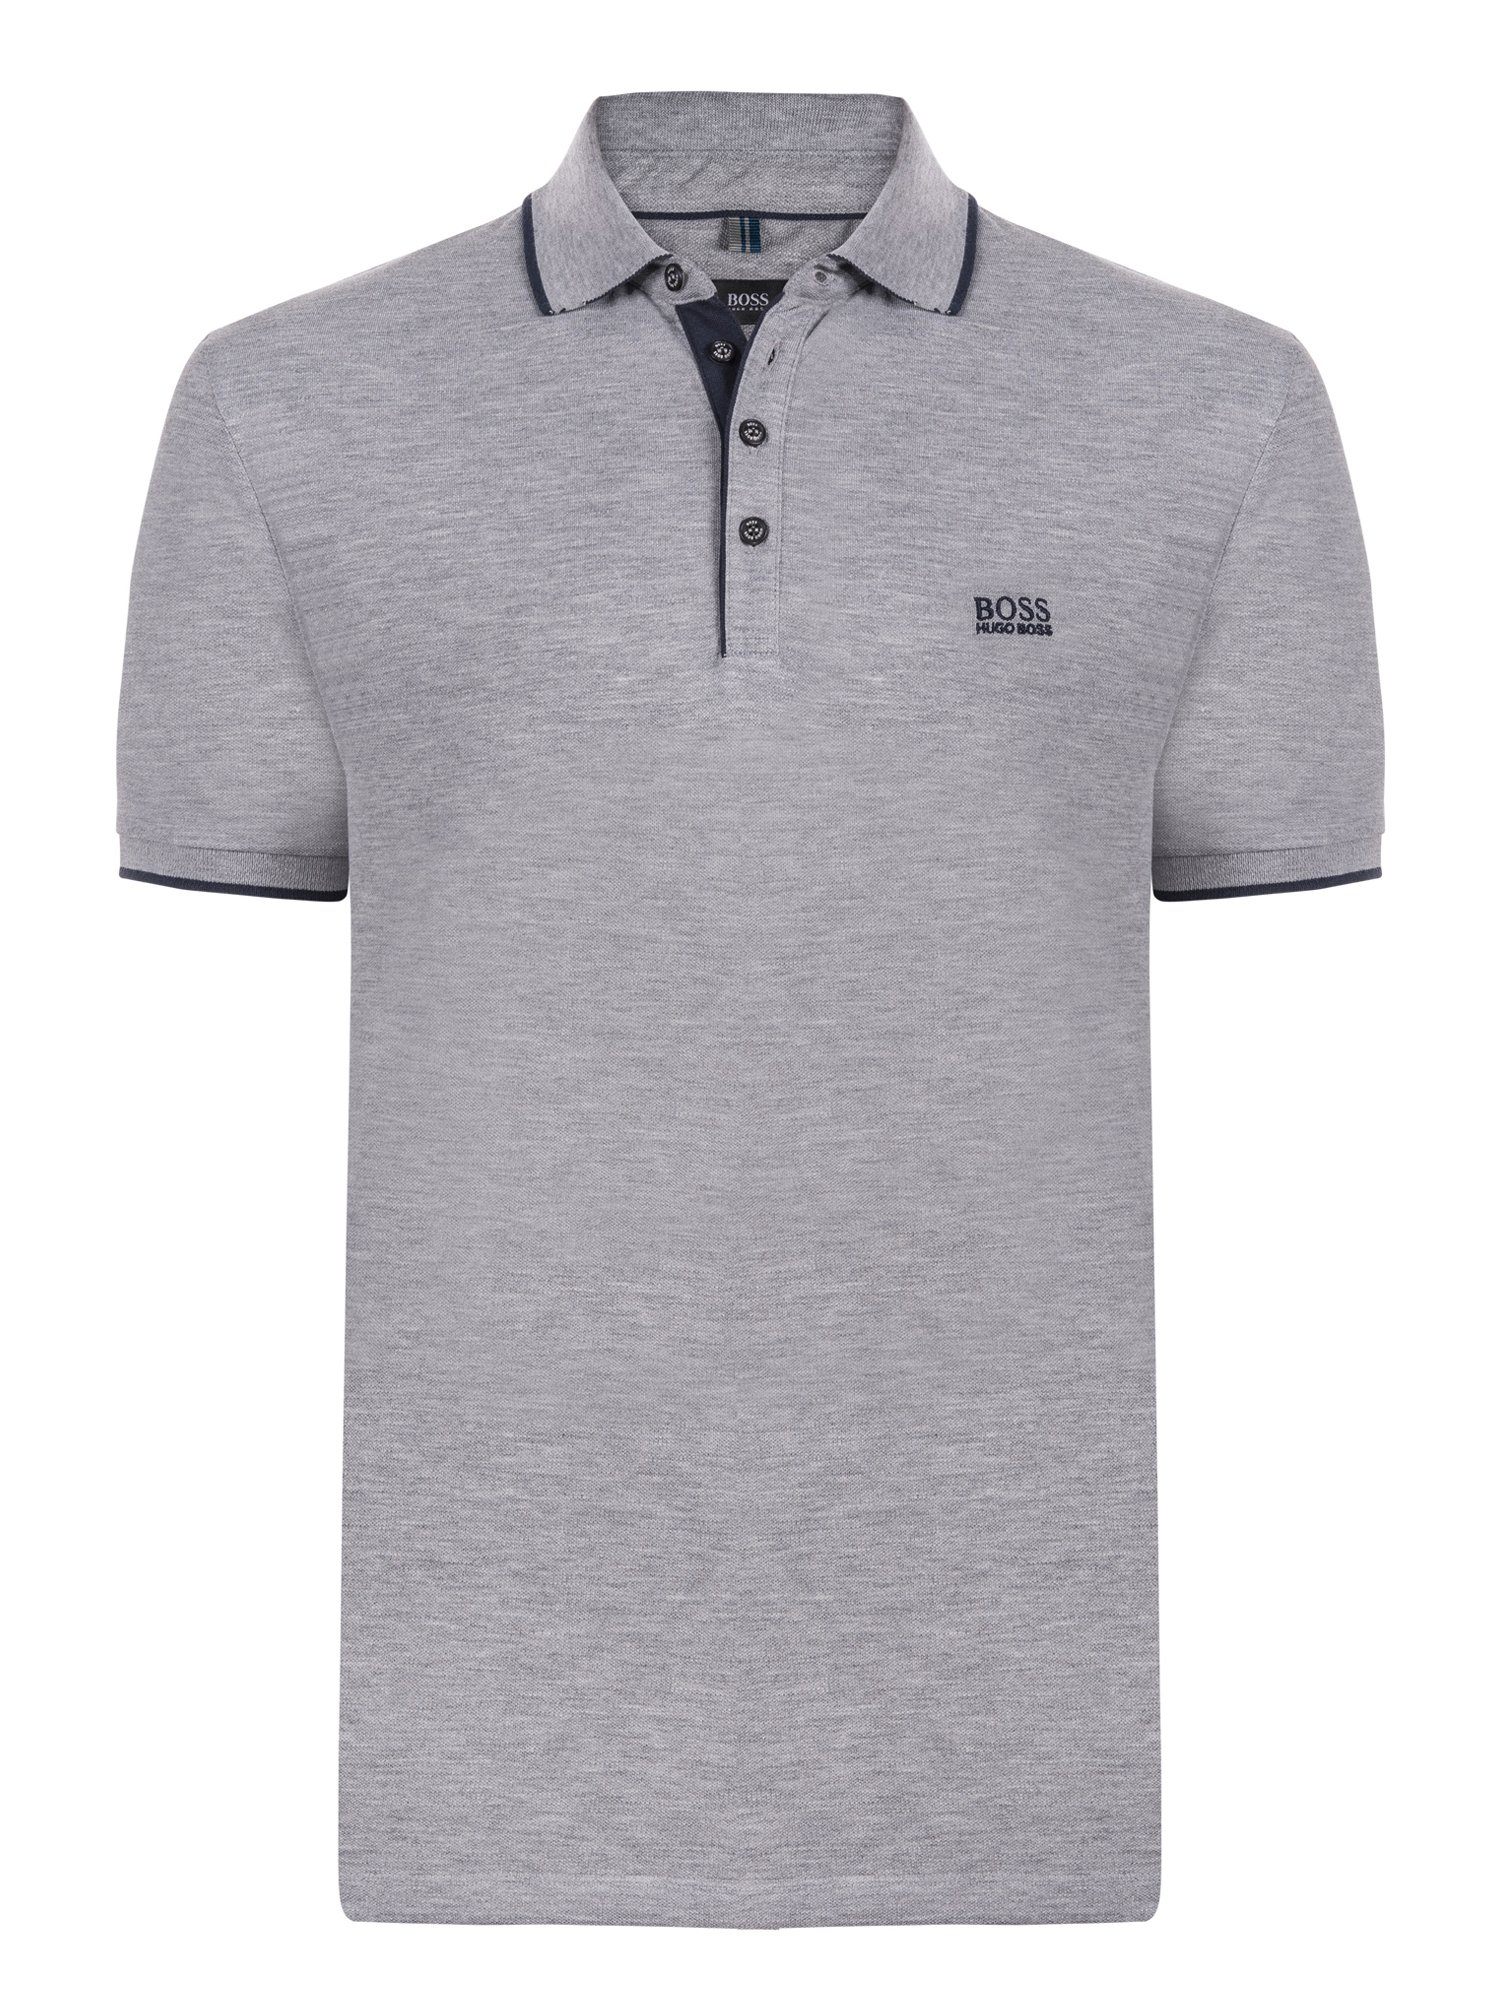 Hugo Boss Mens New Short Sleeve Polo T-shirt